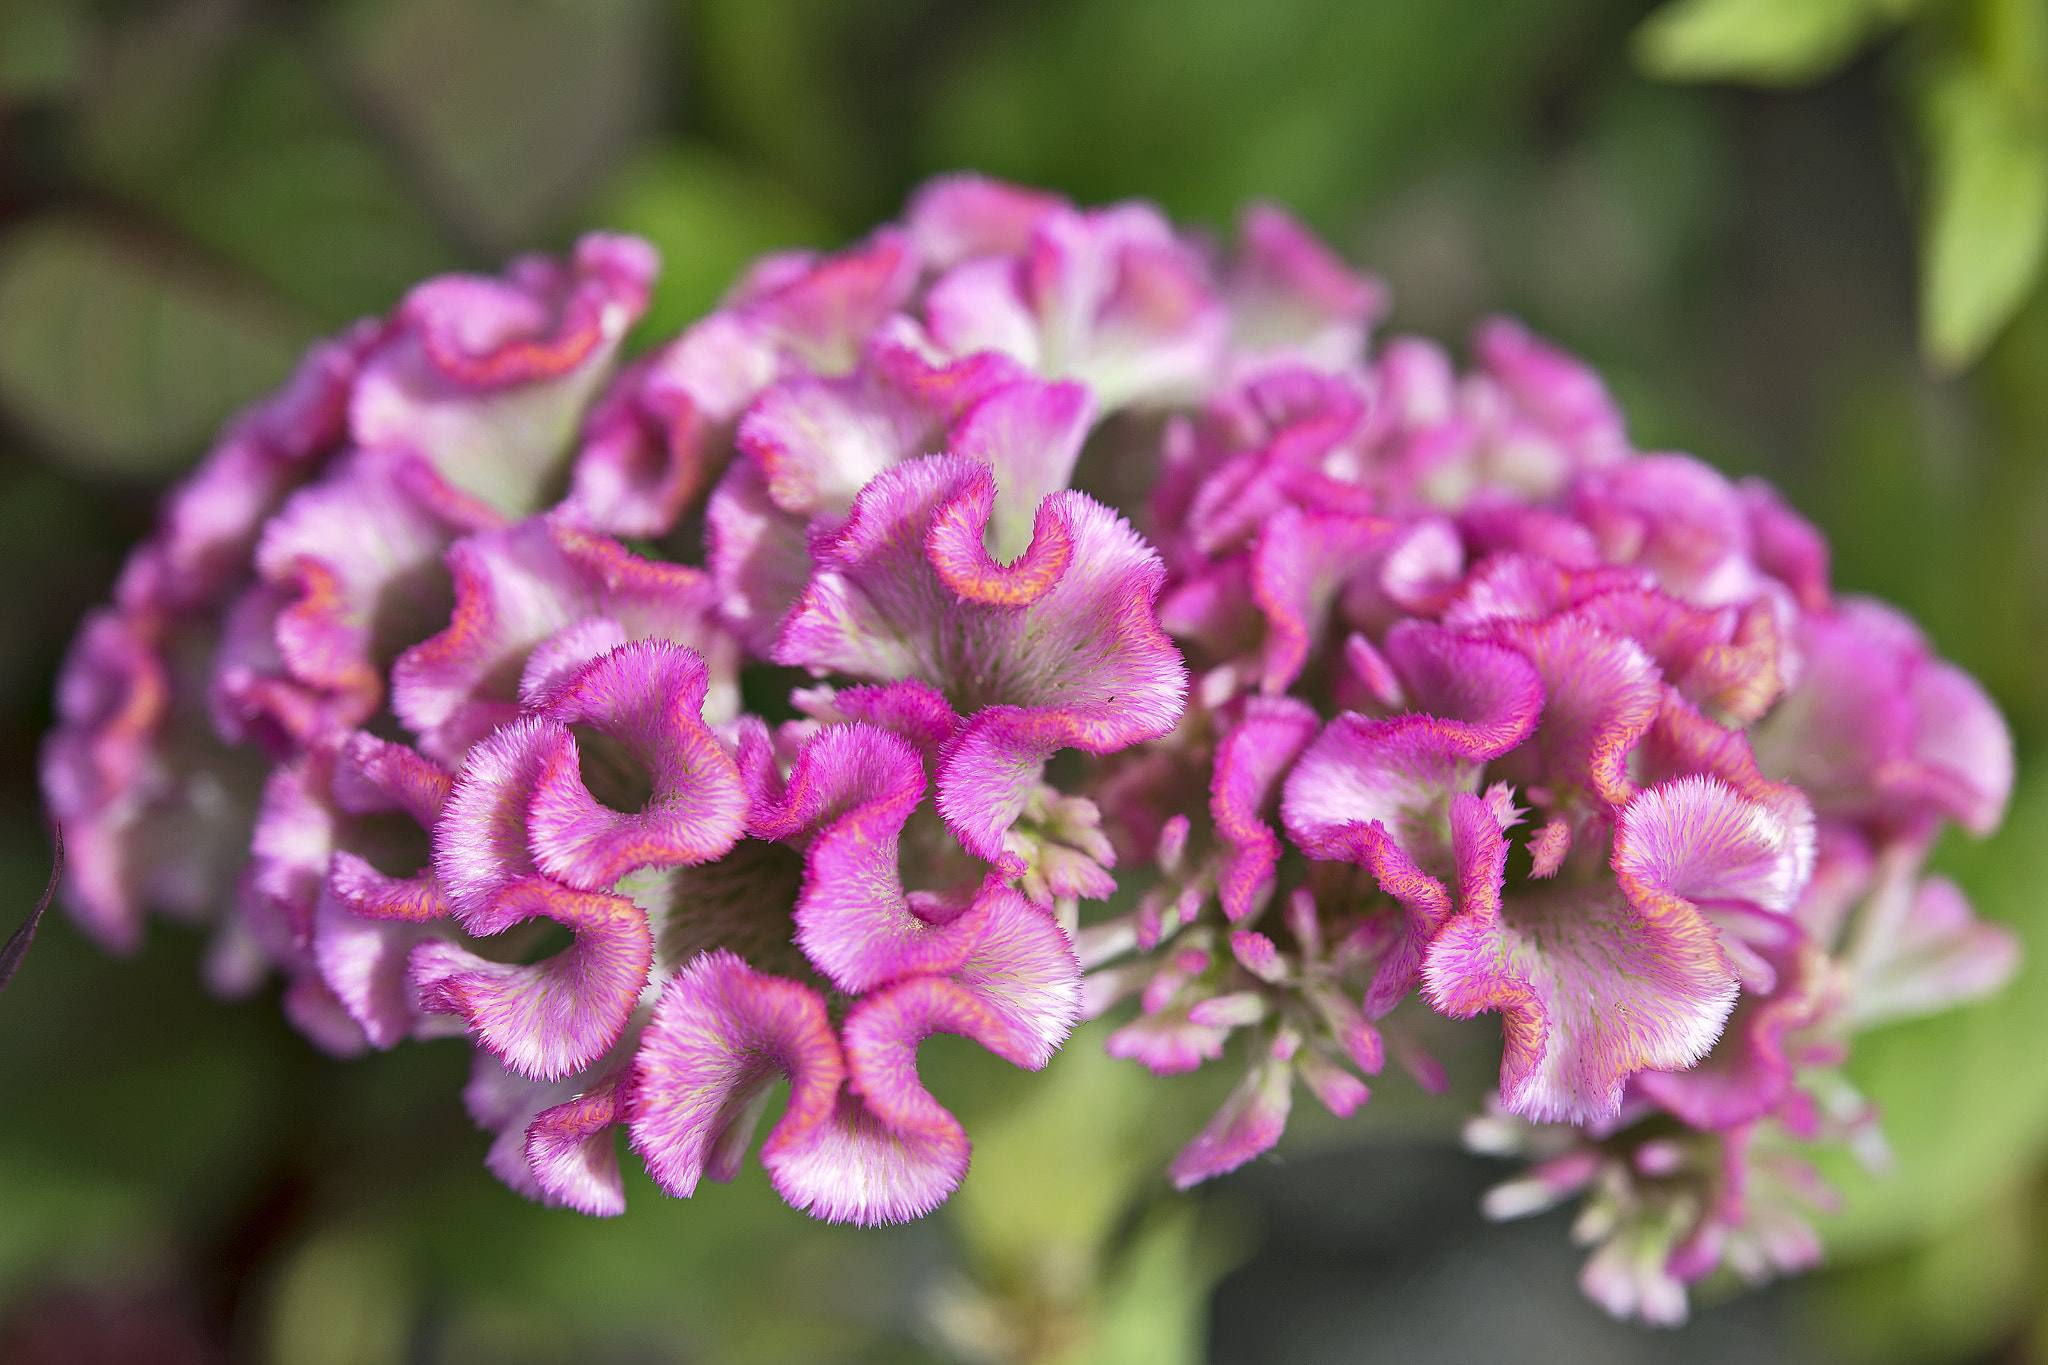 Photograph Celosia Flower by Heather Conley on 500px